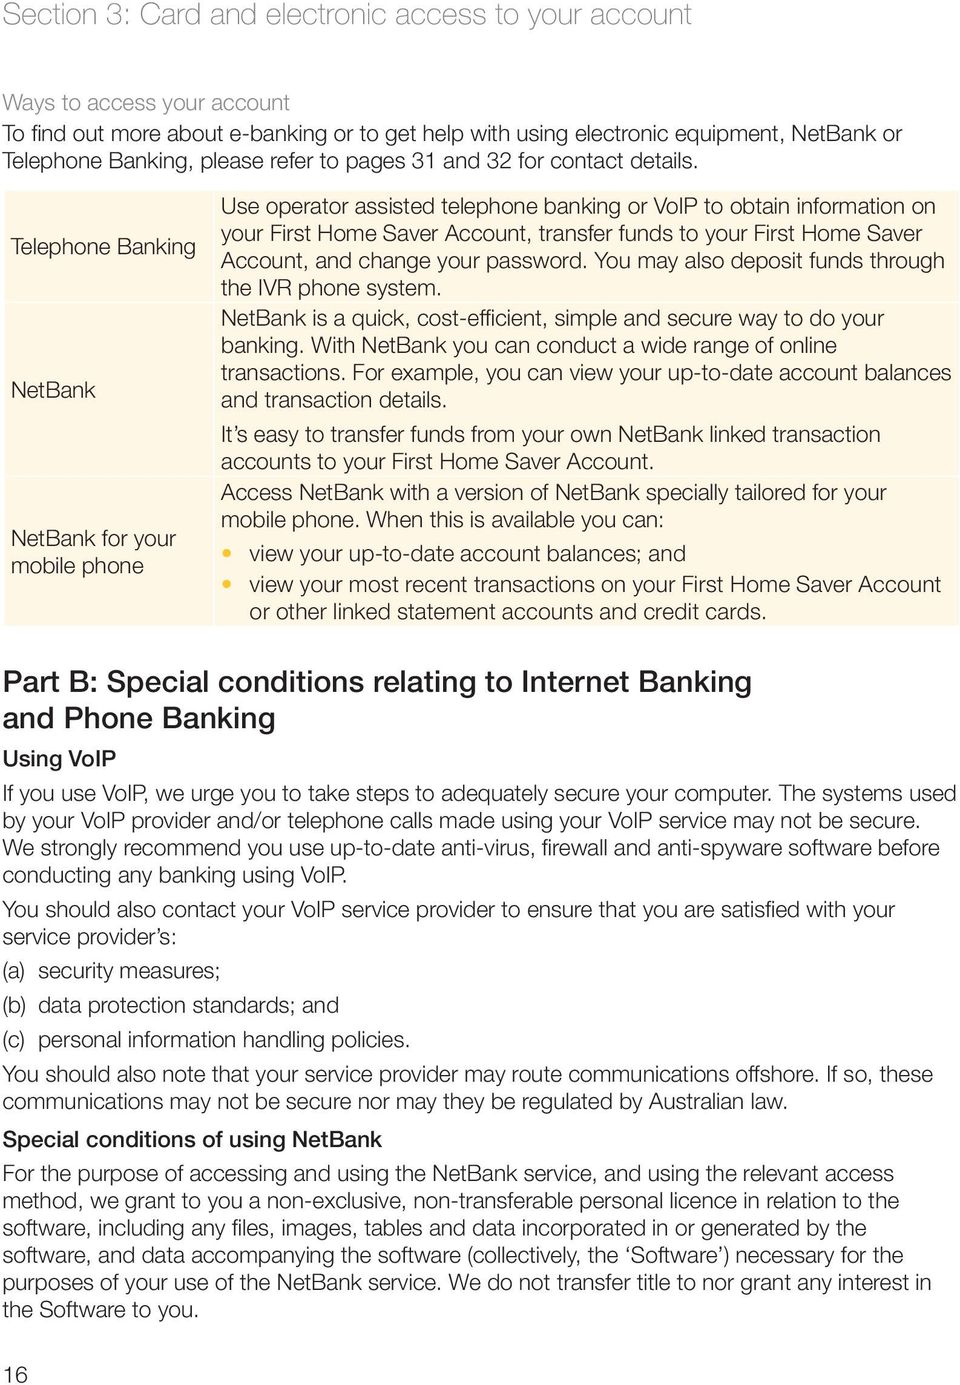 Telephone Banking NetBank NetBank for your mobile phone Use operator assisted telephone banking or VoIP to obtain information on your First Home Saver Account, transfer funds to your First Home Saver